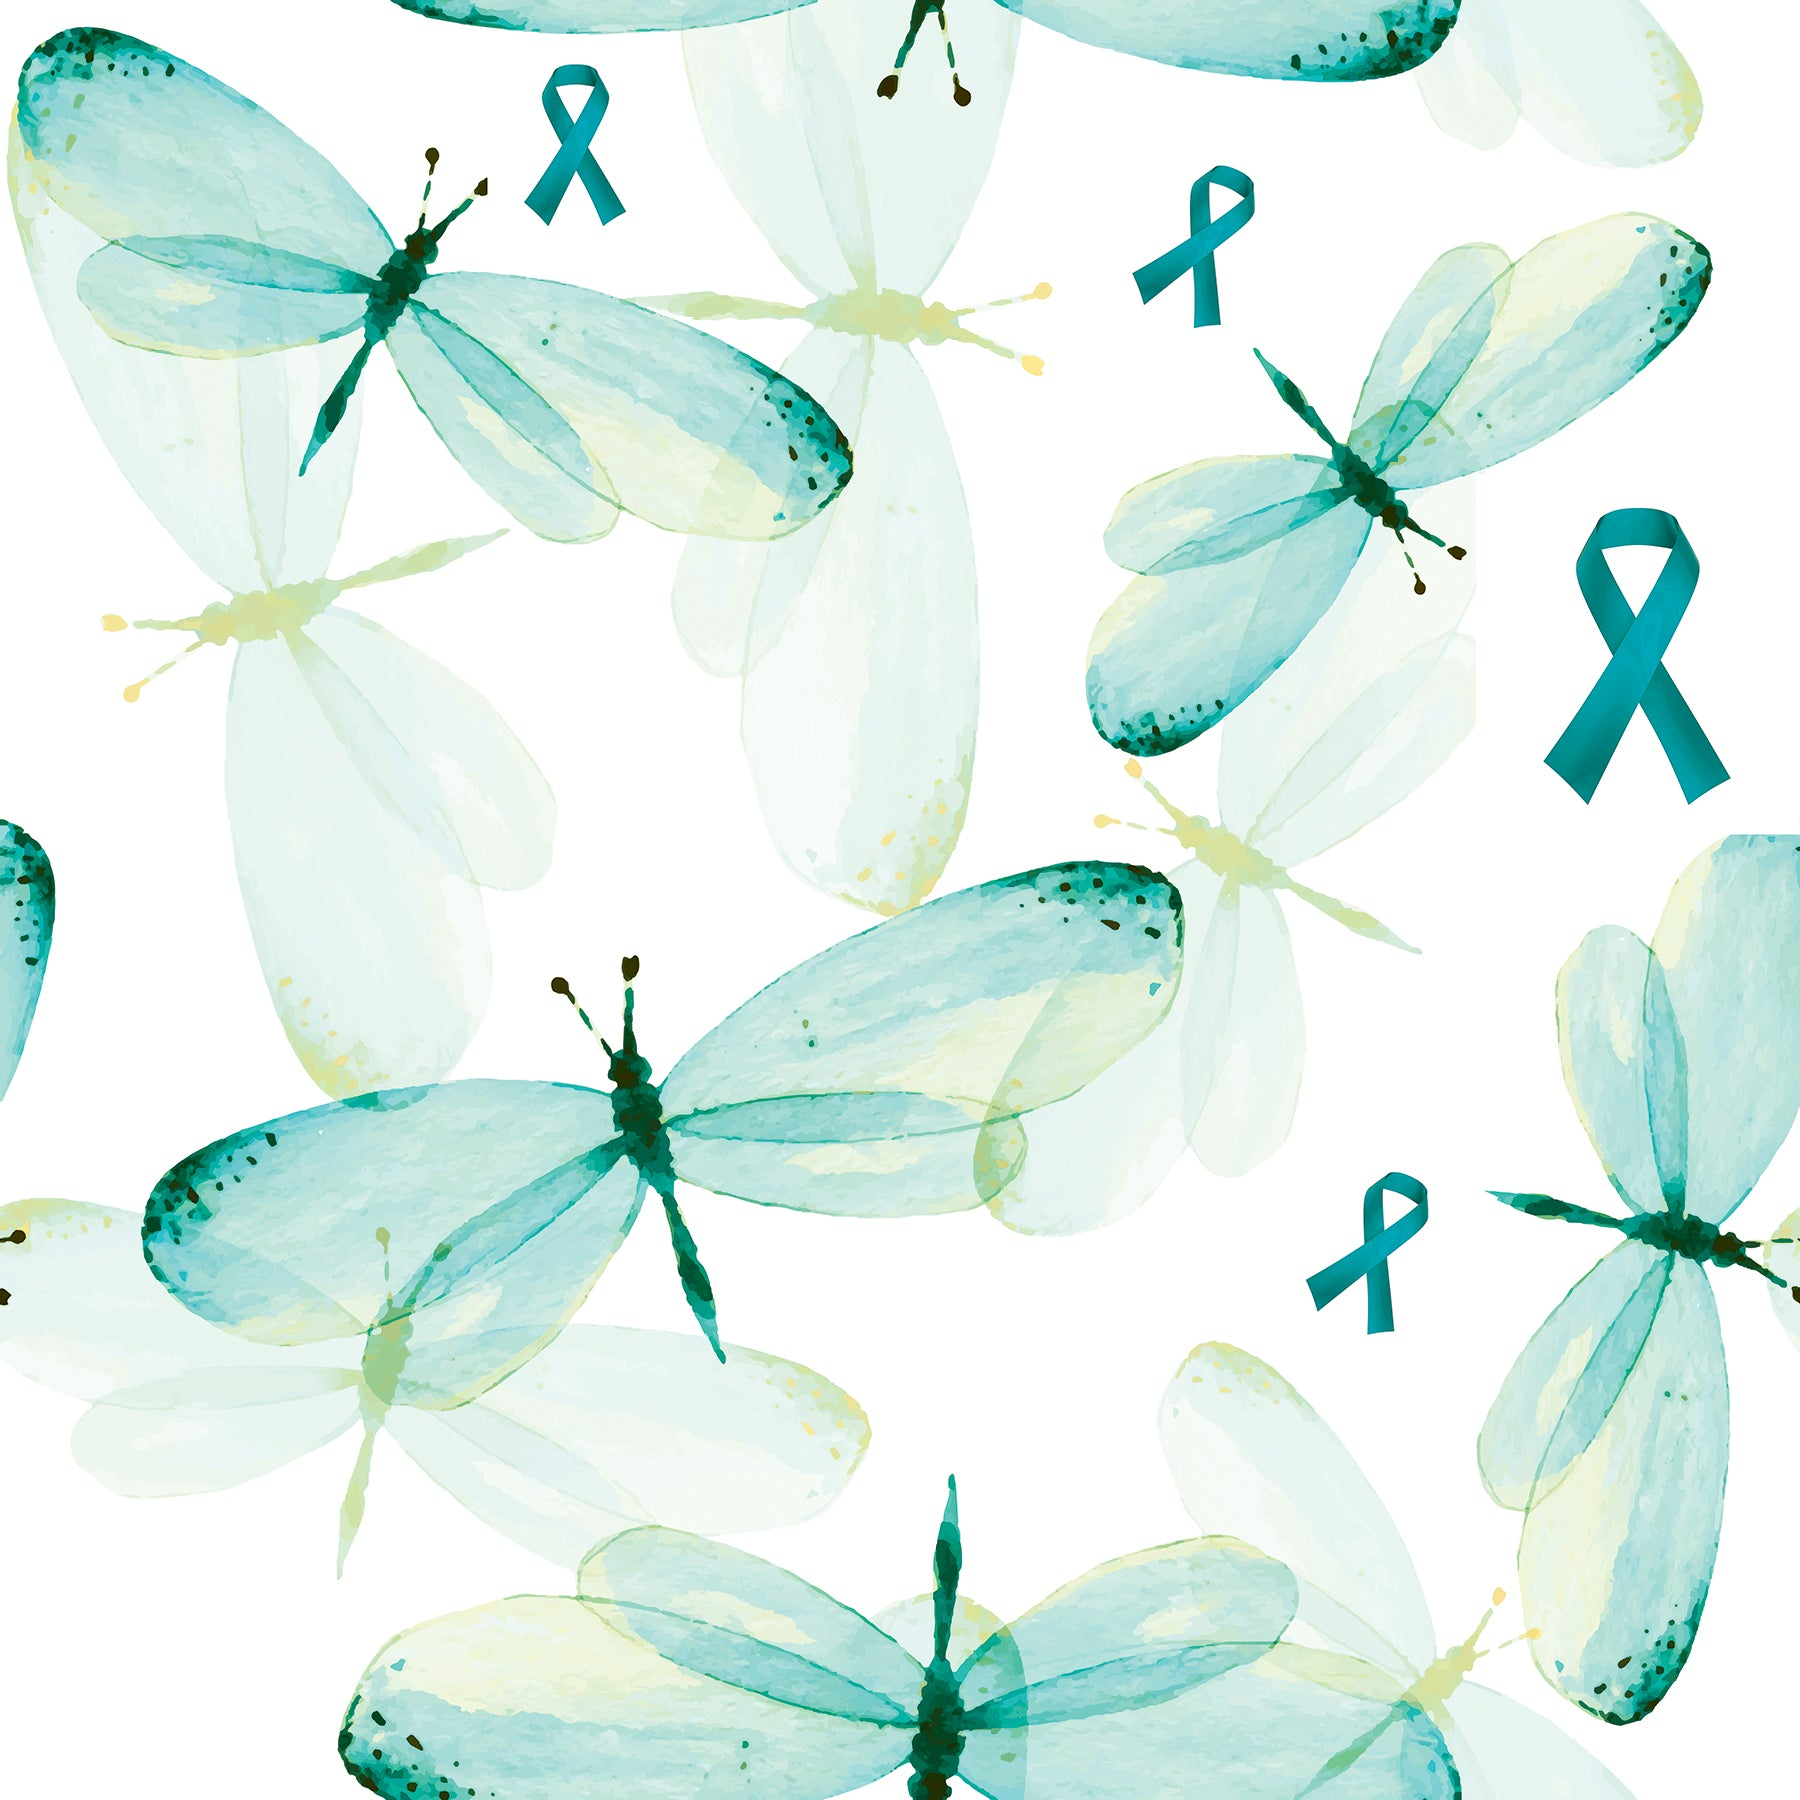 Cancer Fabric Ovarian Cancer Dragonflies And Ribbons Cotton And Fle Beautiful Quilt